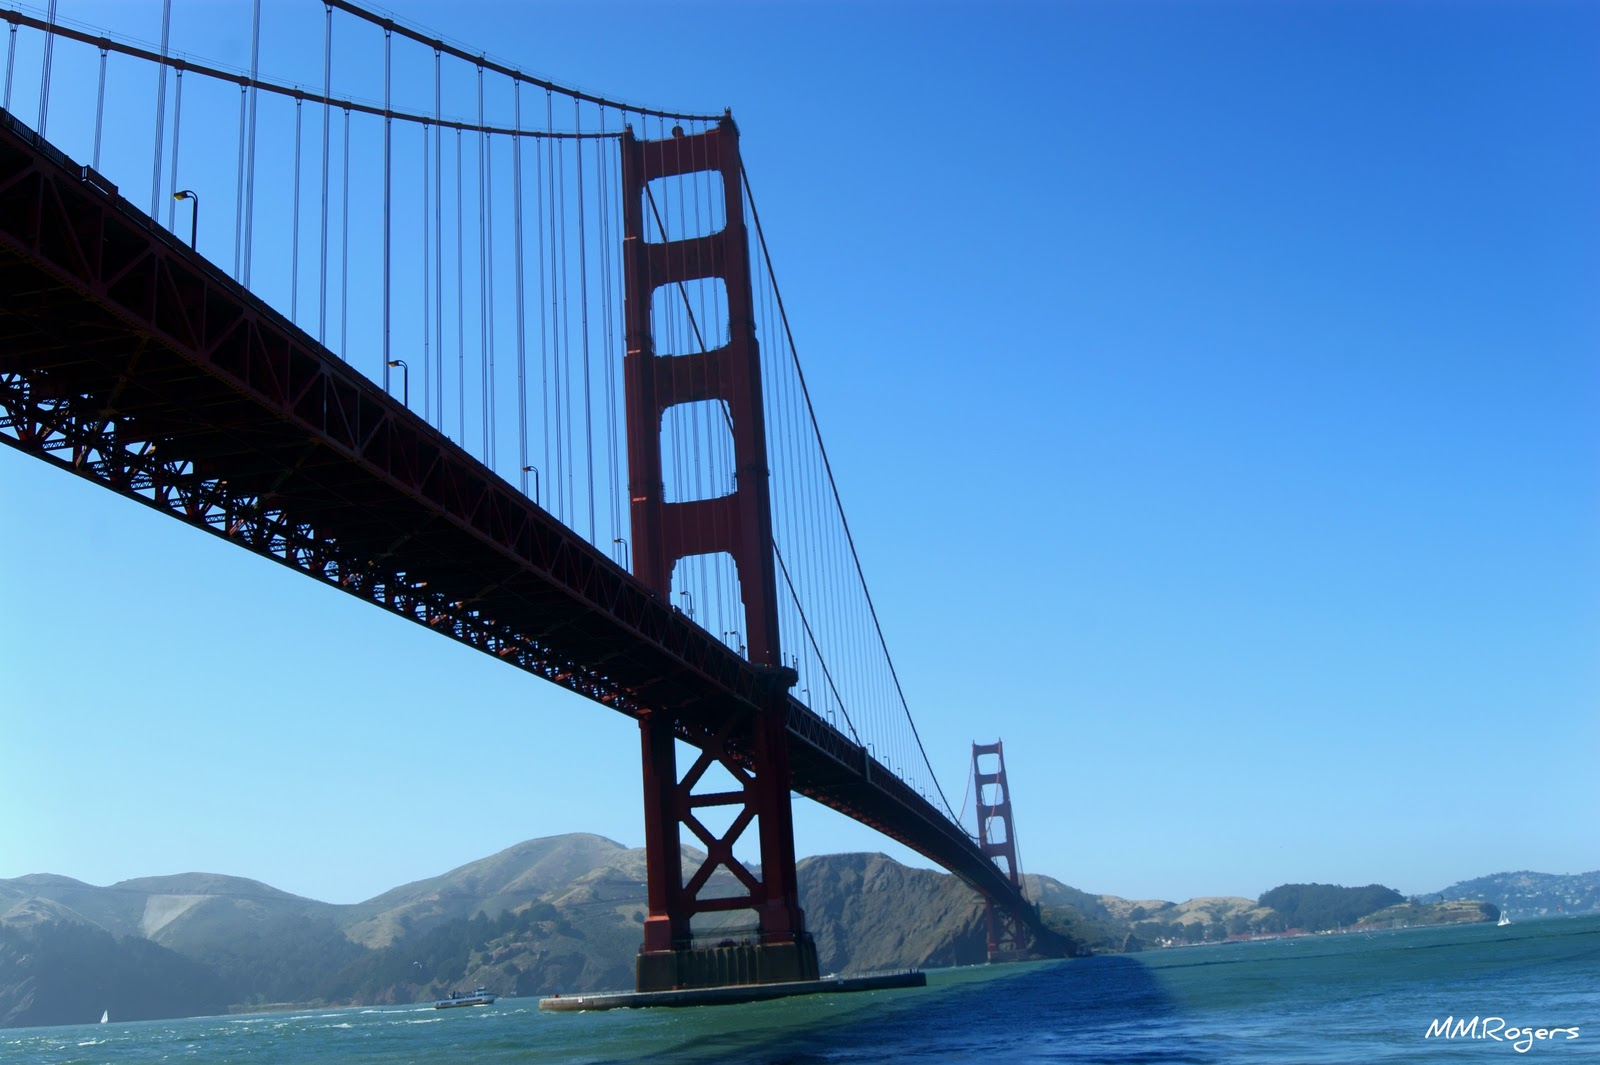 Mm Rogers Photographs Iconic San Francisco Sights